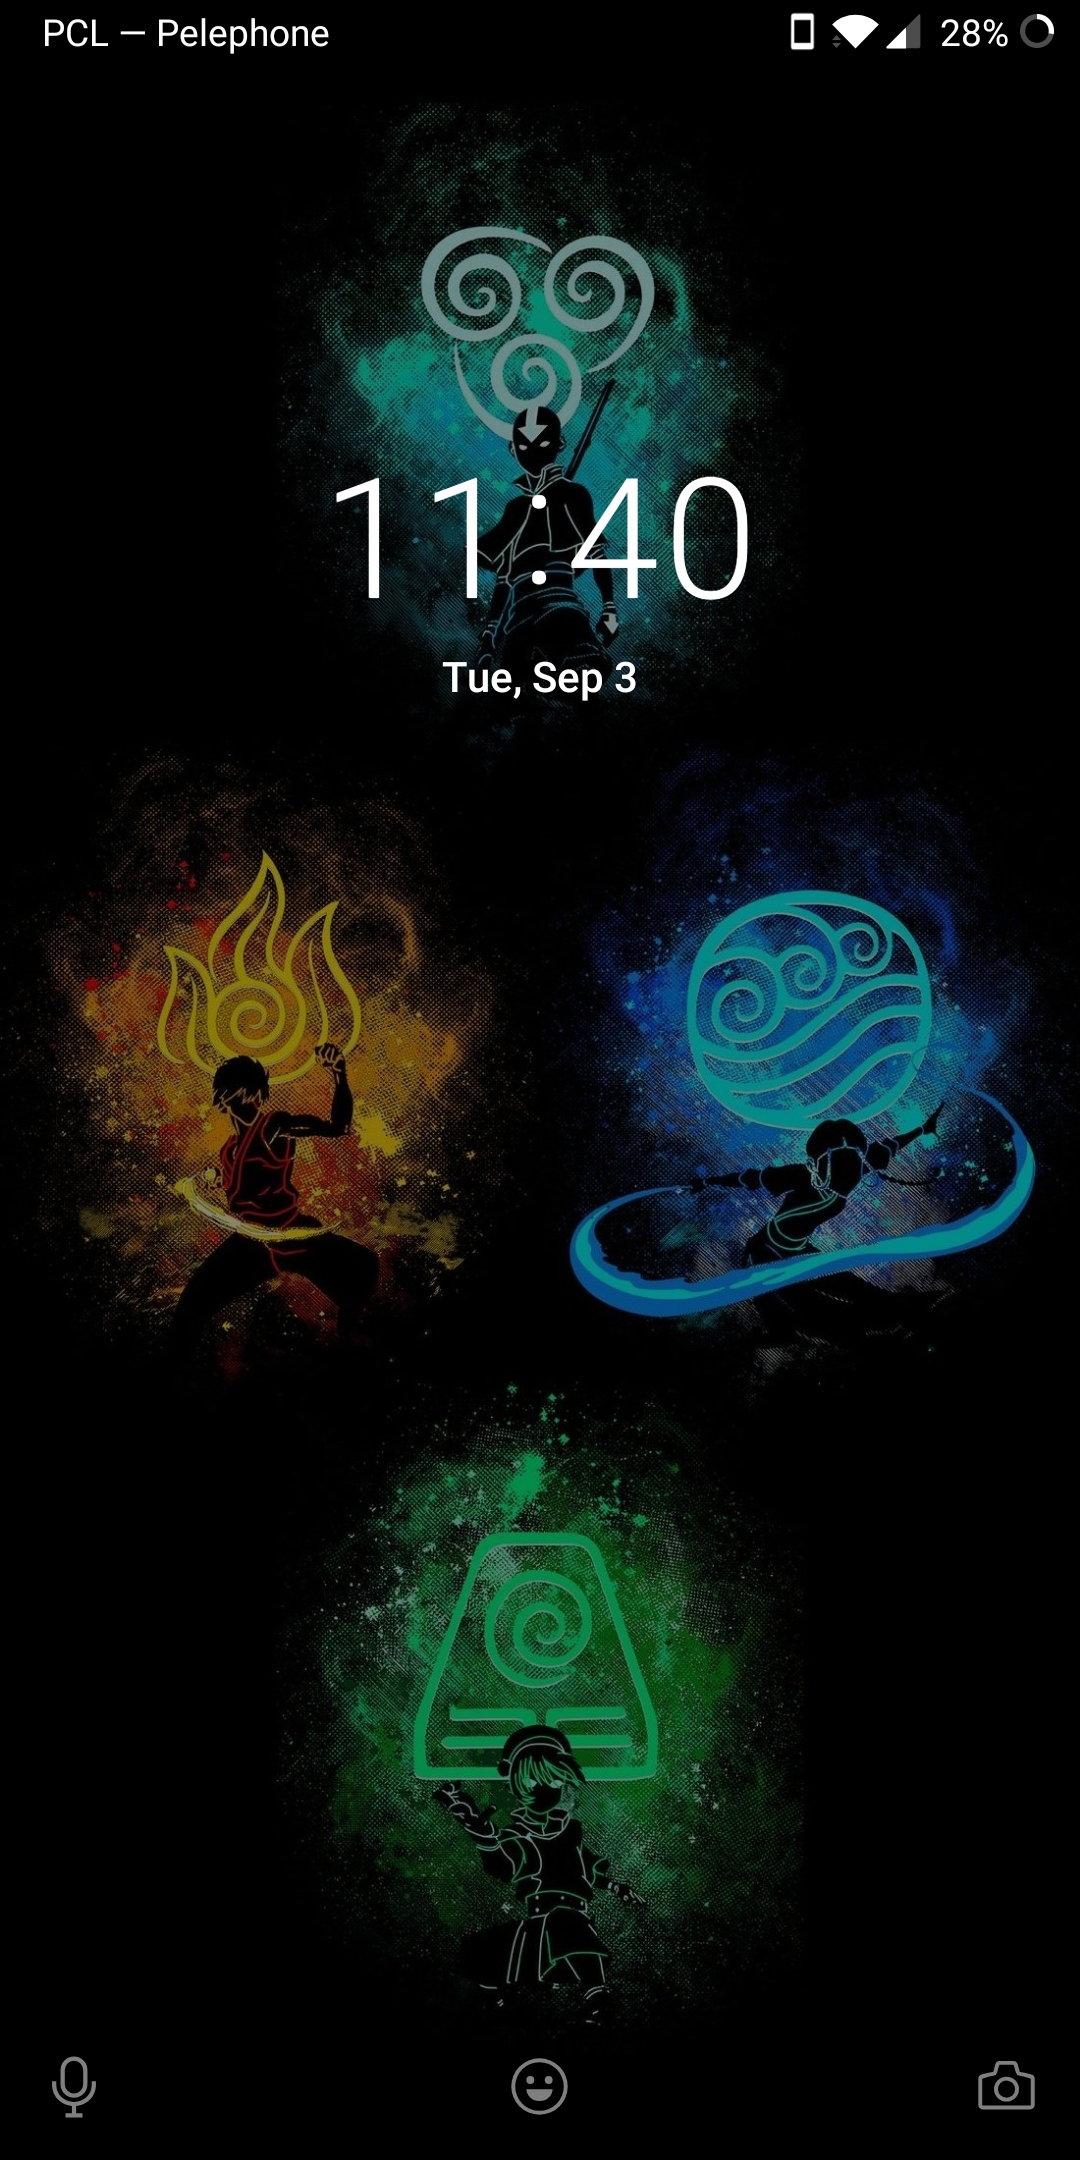 Avatar The Last Airbender Lockscreen Avatar The Last Airbender Iphone 3147799 Hd Wallpaper Backgrounds Download